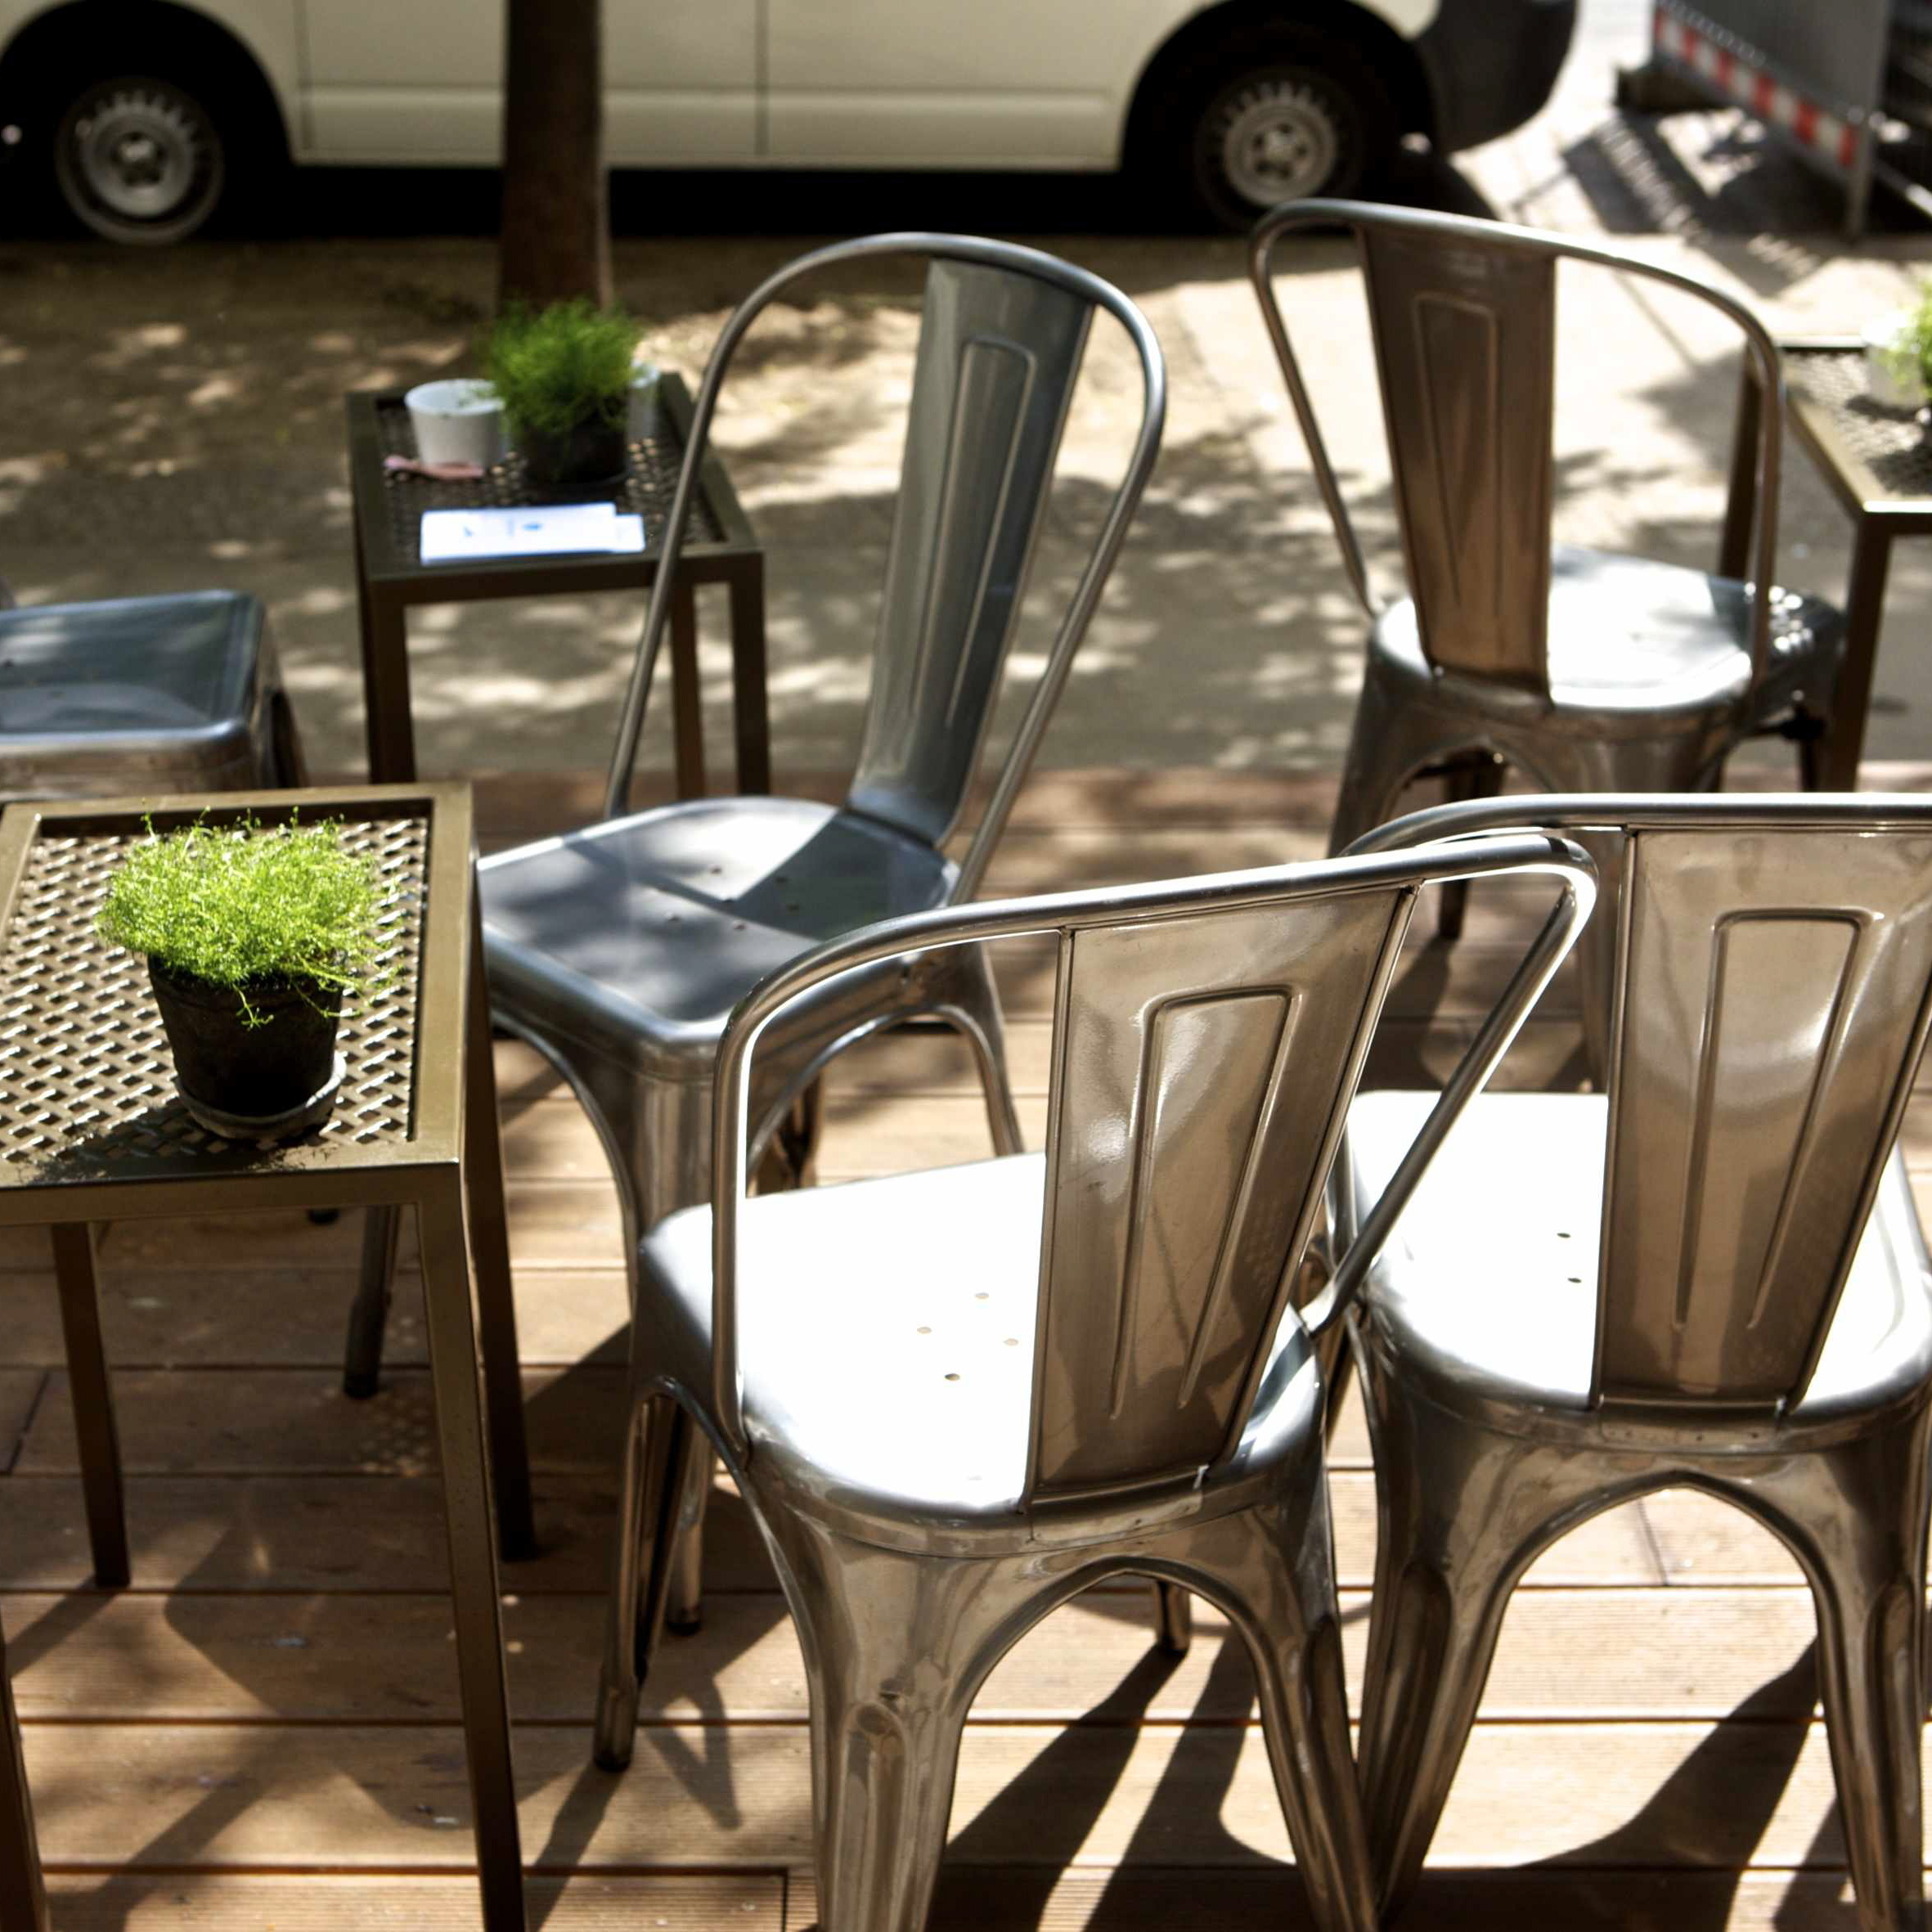 Efas-Frozen-Yogurt-Berlin-Terrasse